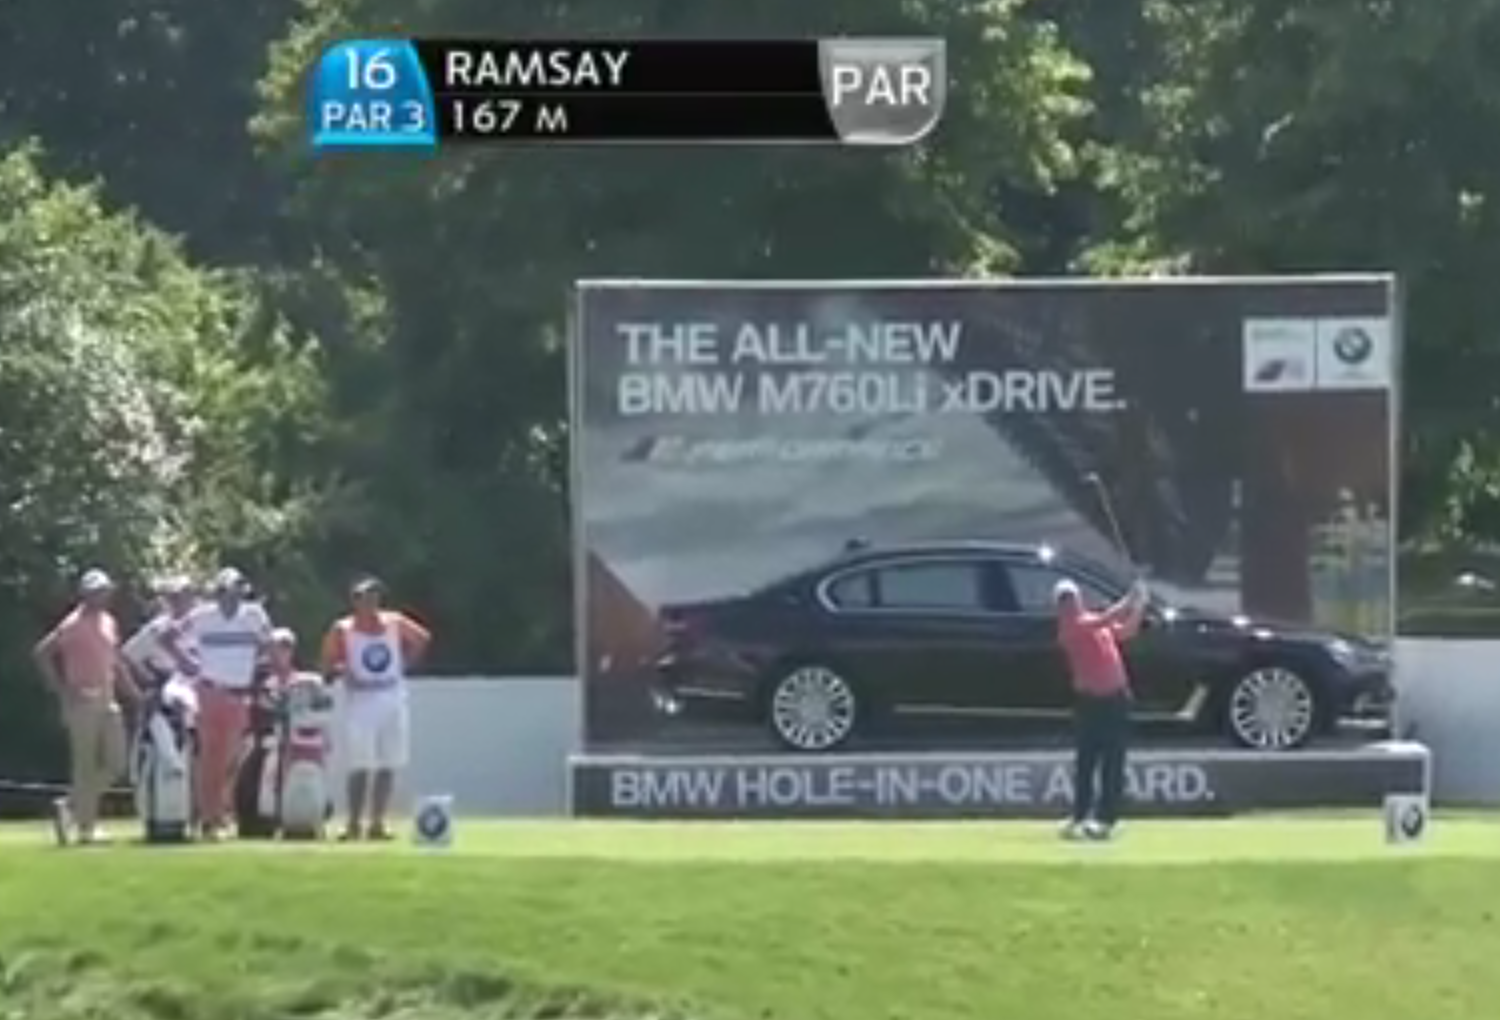 Richie Ramsay downs a hole-in-one to win the car